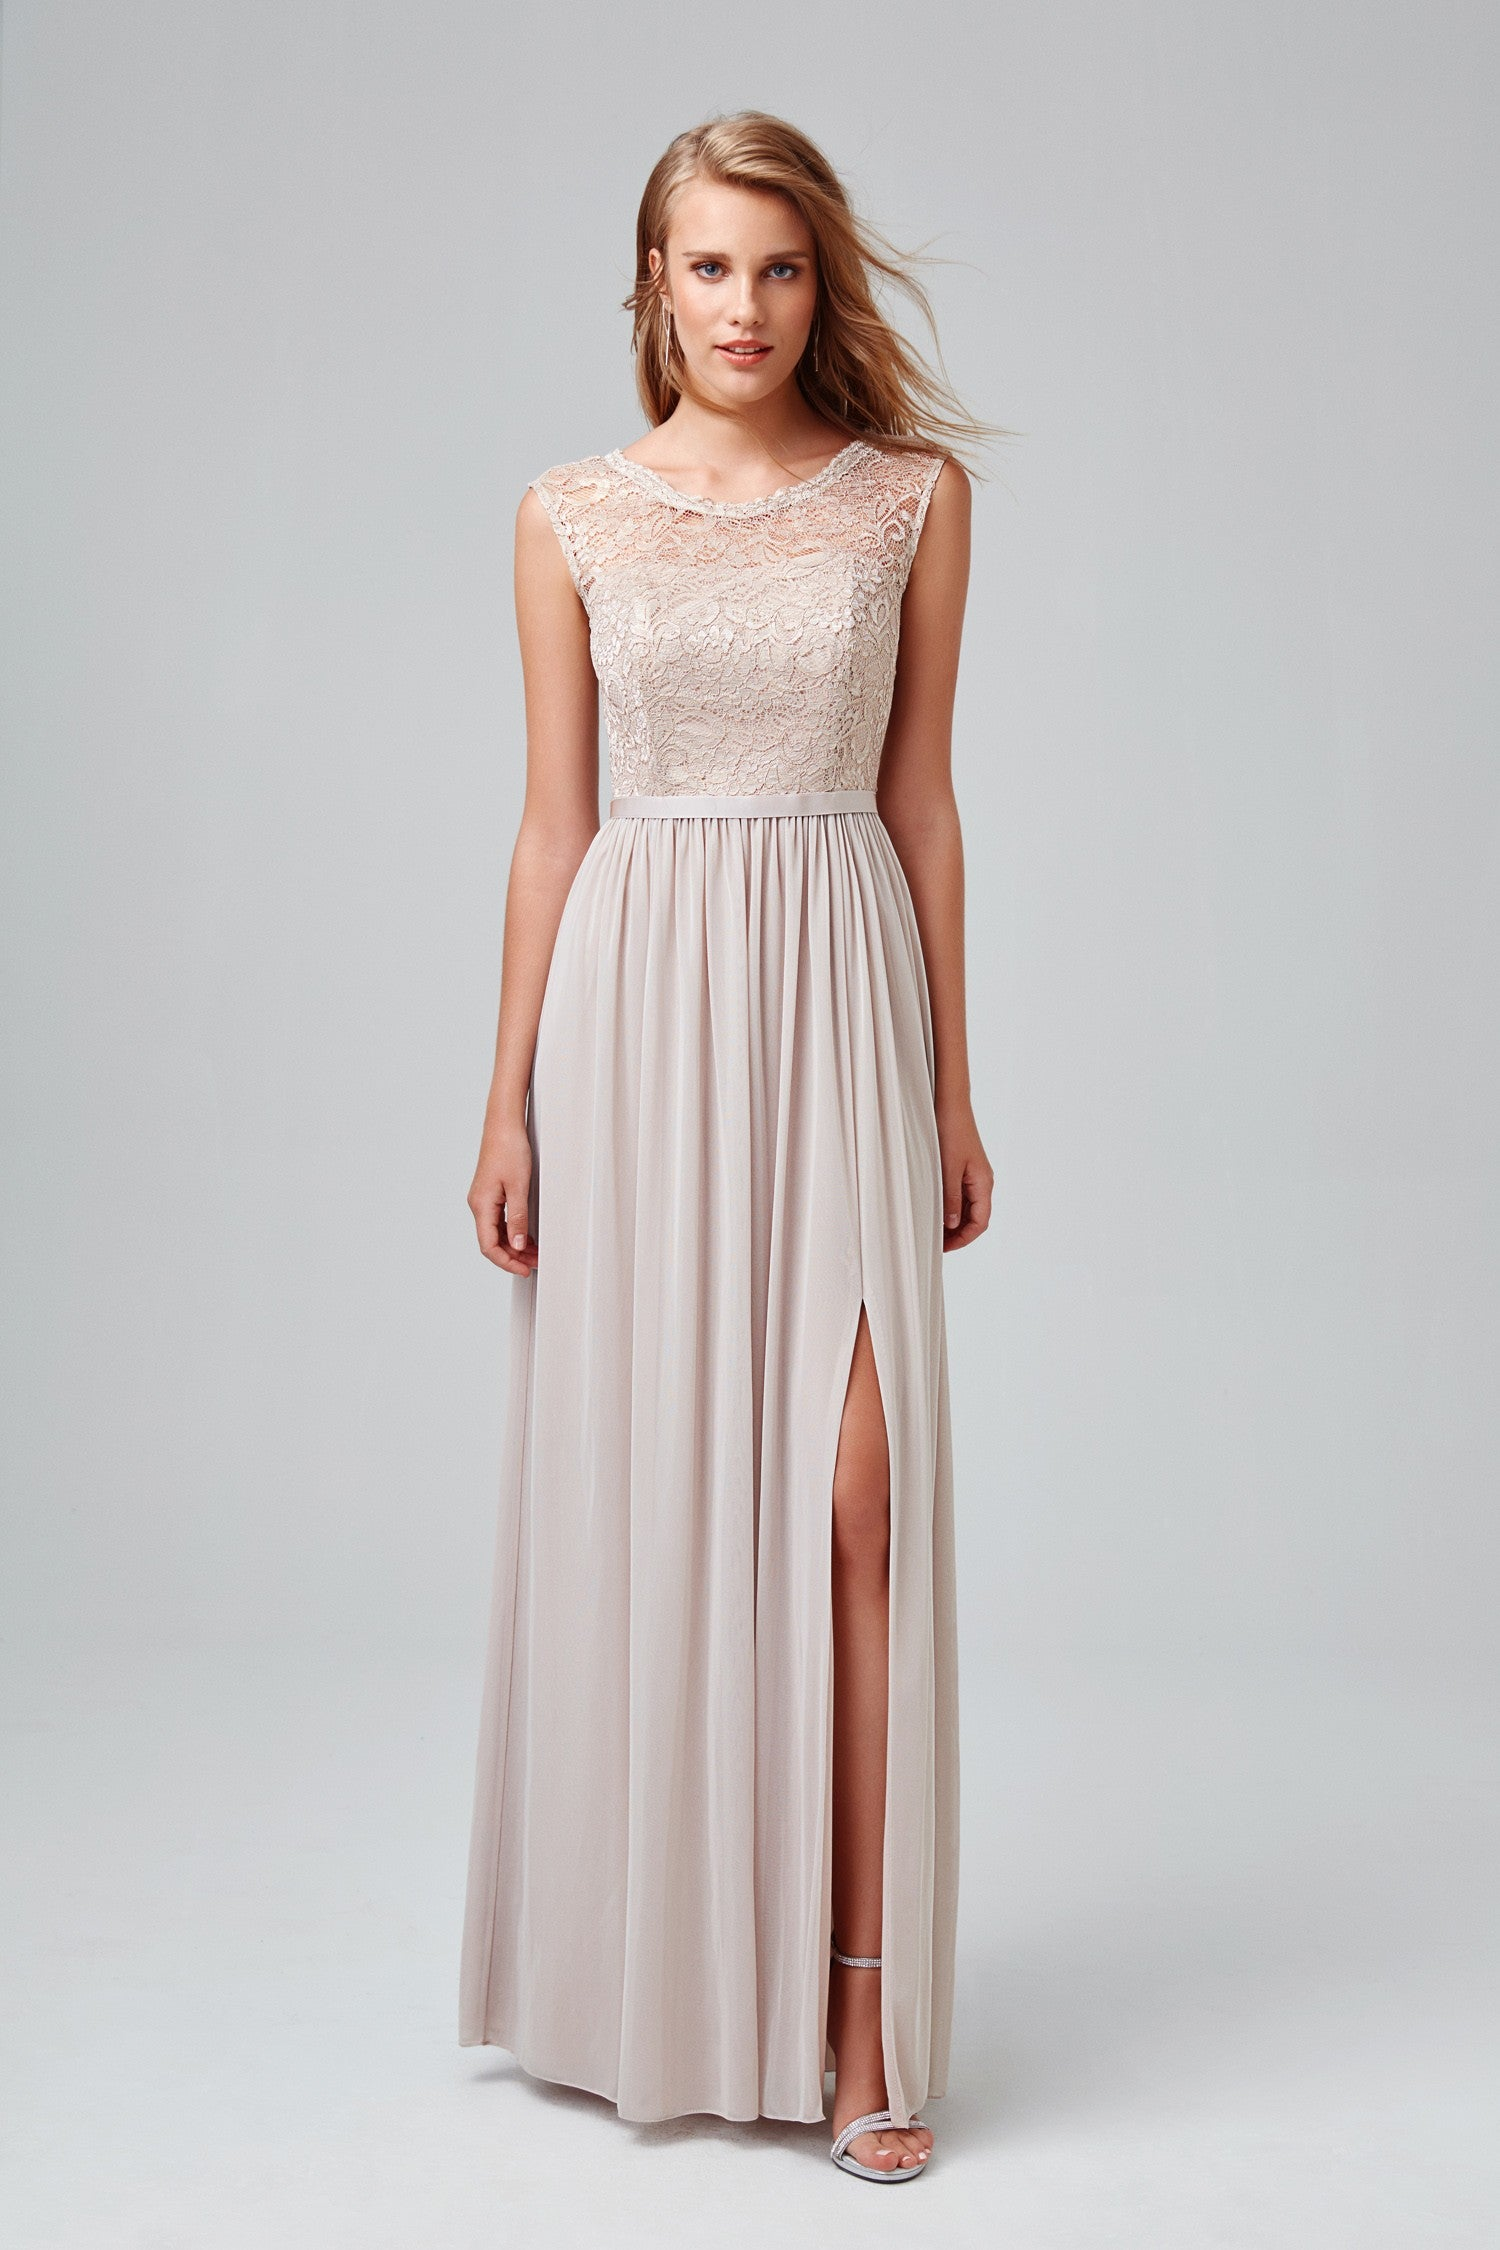 Long Bridesmaid Dress with Lace Bodice-F19328M